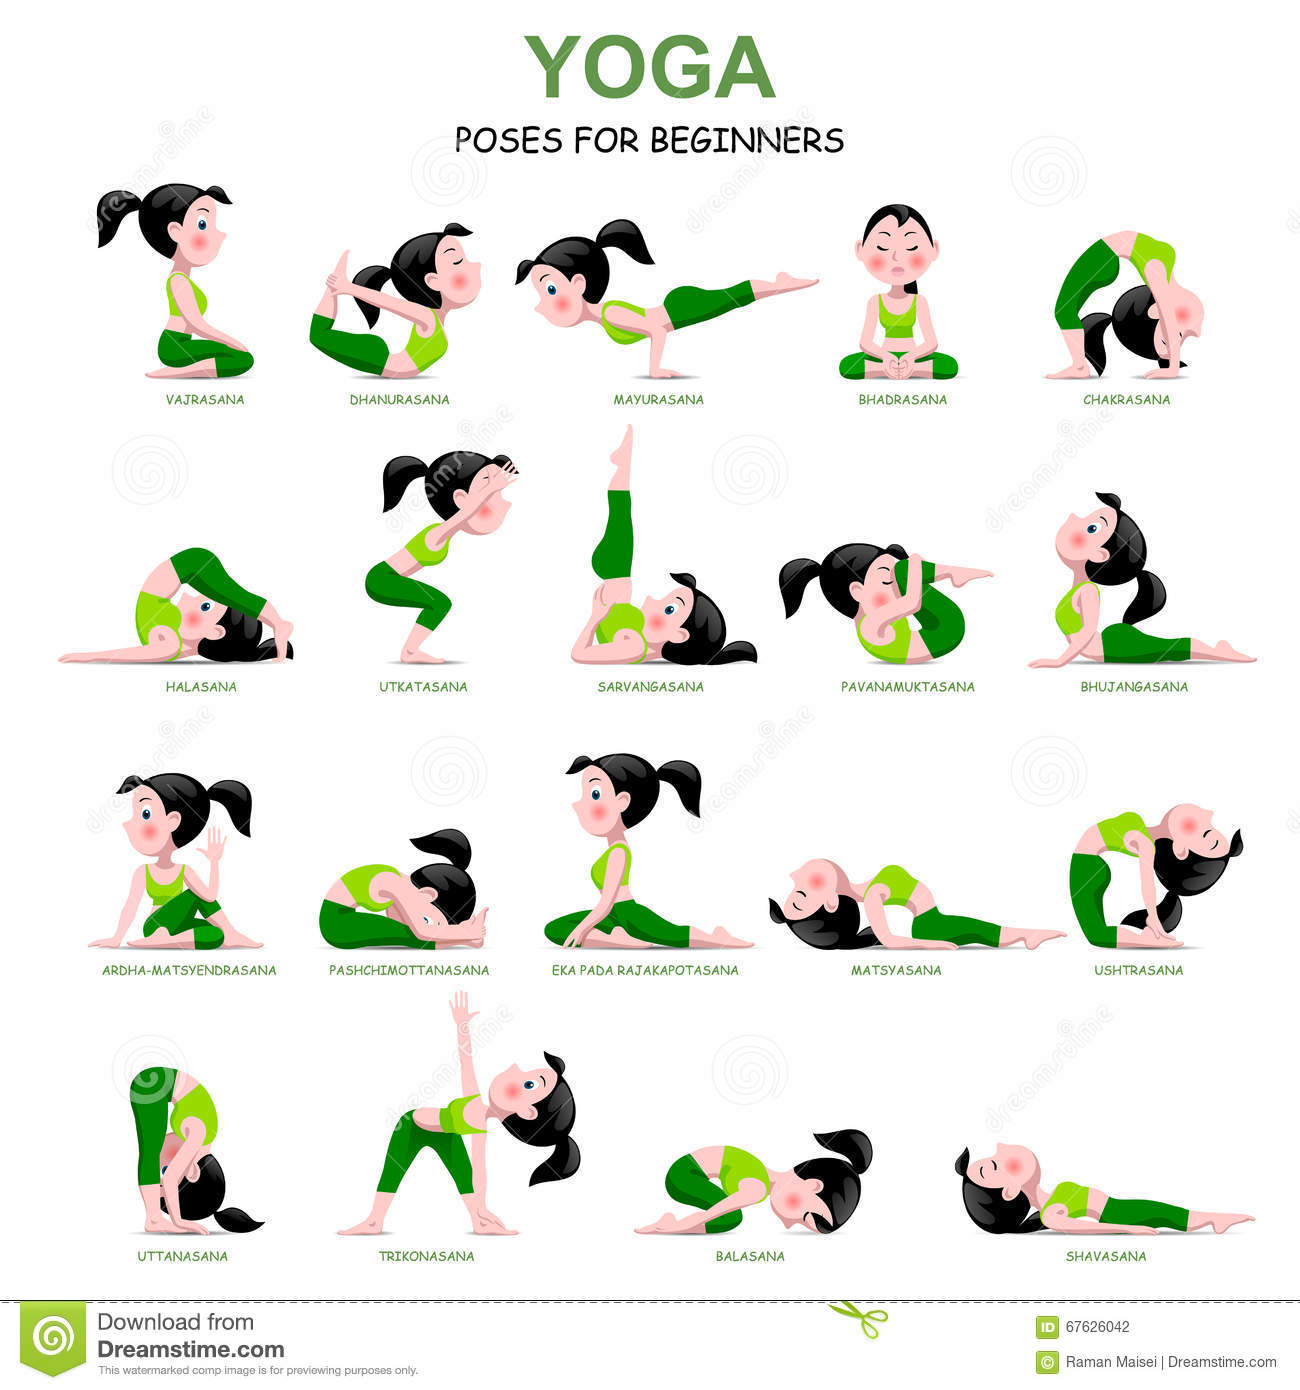 Download Cartoon Girl In Yoga Poses With Titles For Beginners Isolated On Stock Vector